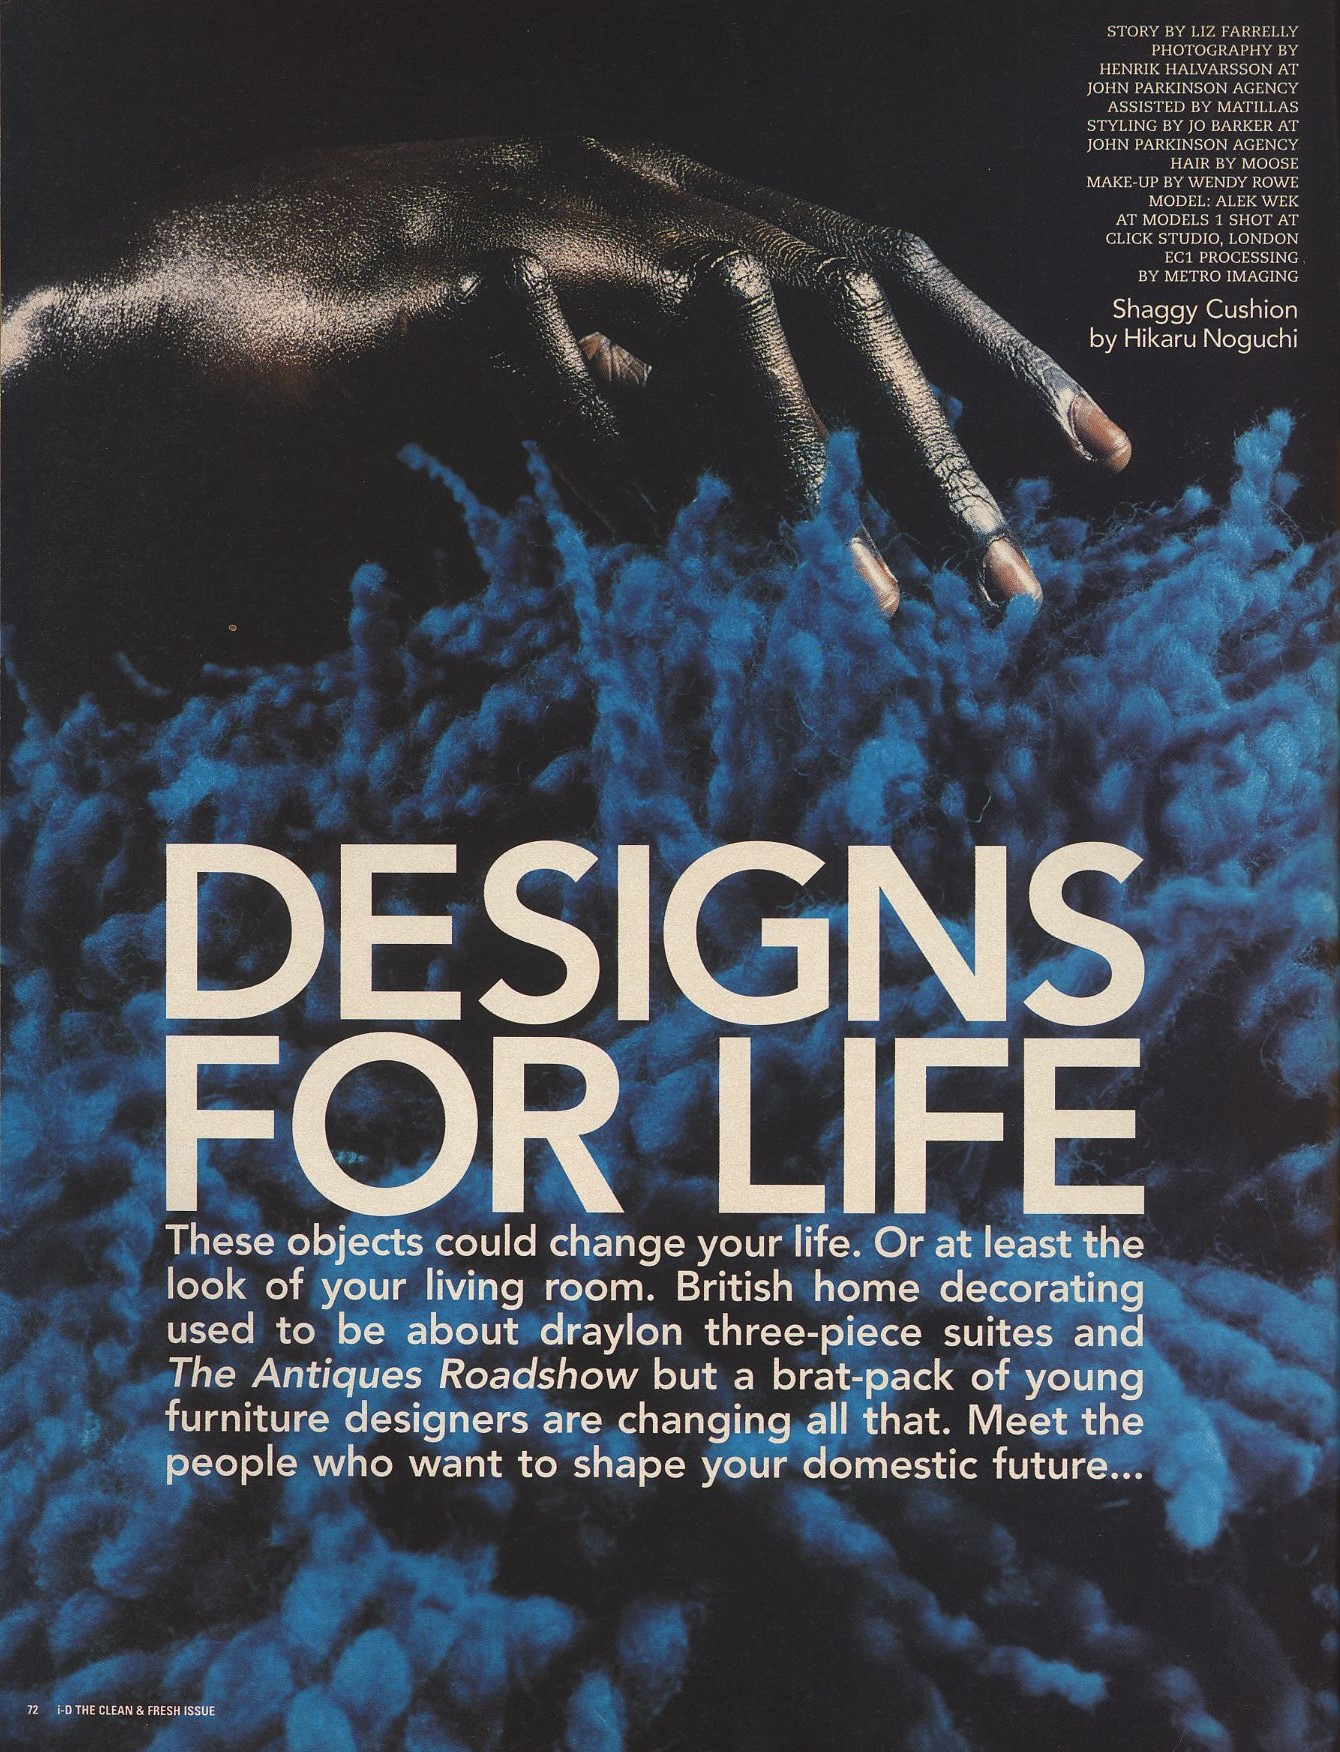 DESIGNS FOR LIFE | ALEK WEK | PHOTOGRAPHY HENRIK HALVARSSON | STYLING JO BARKER | i-D THE CLEAN & FRESH ISSUE NO. 166 | JULY 1997